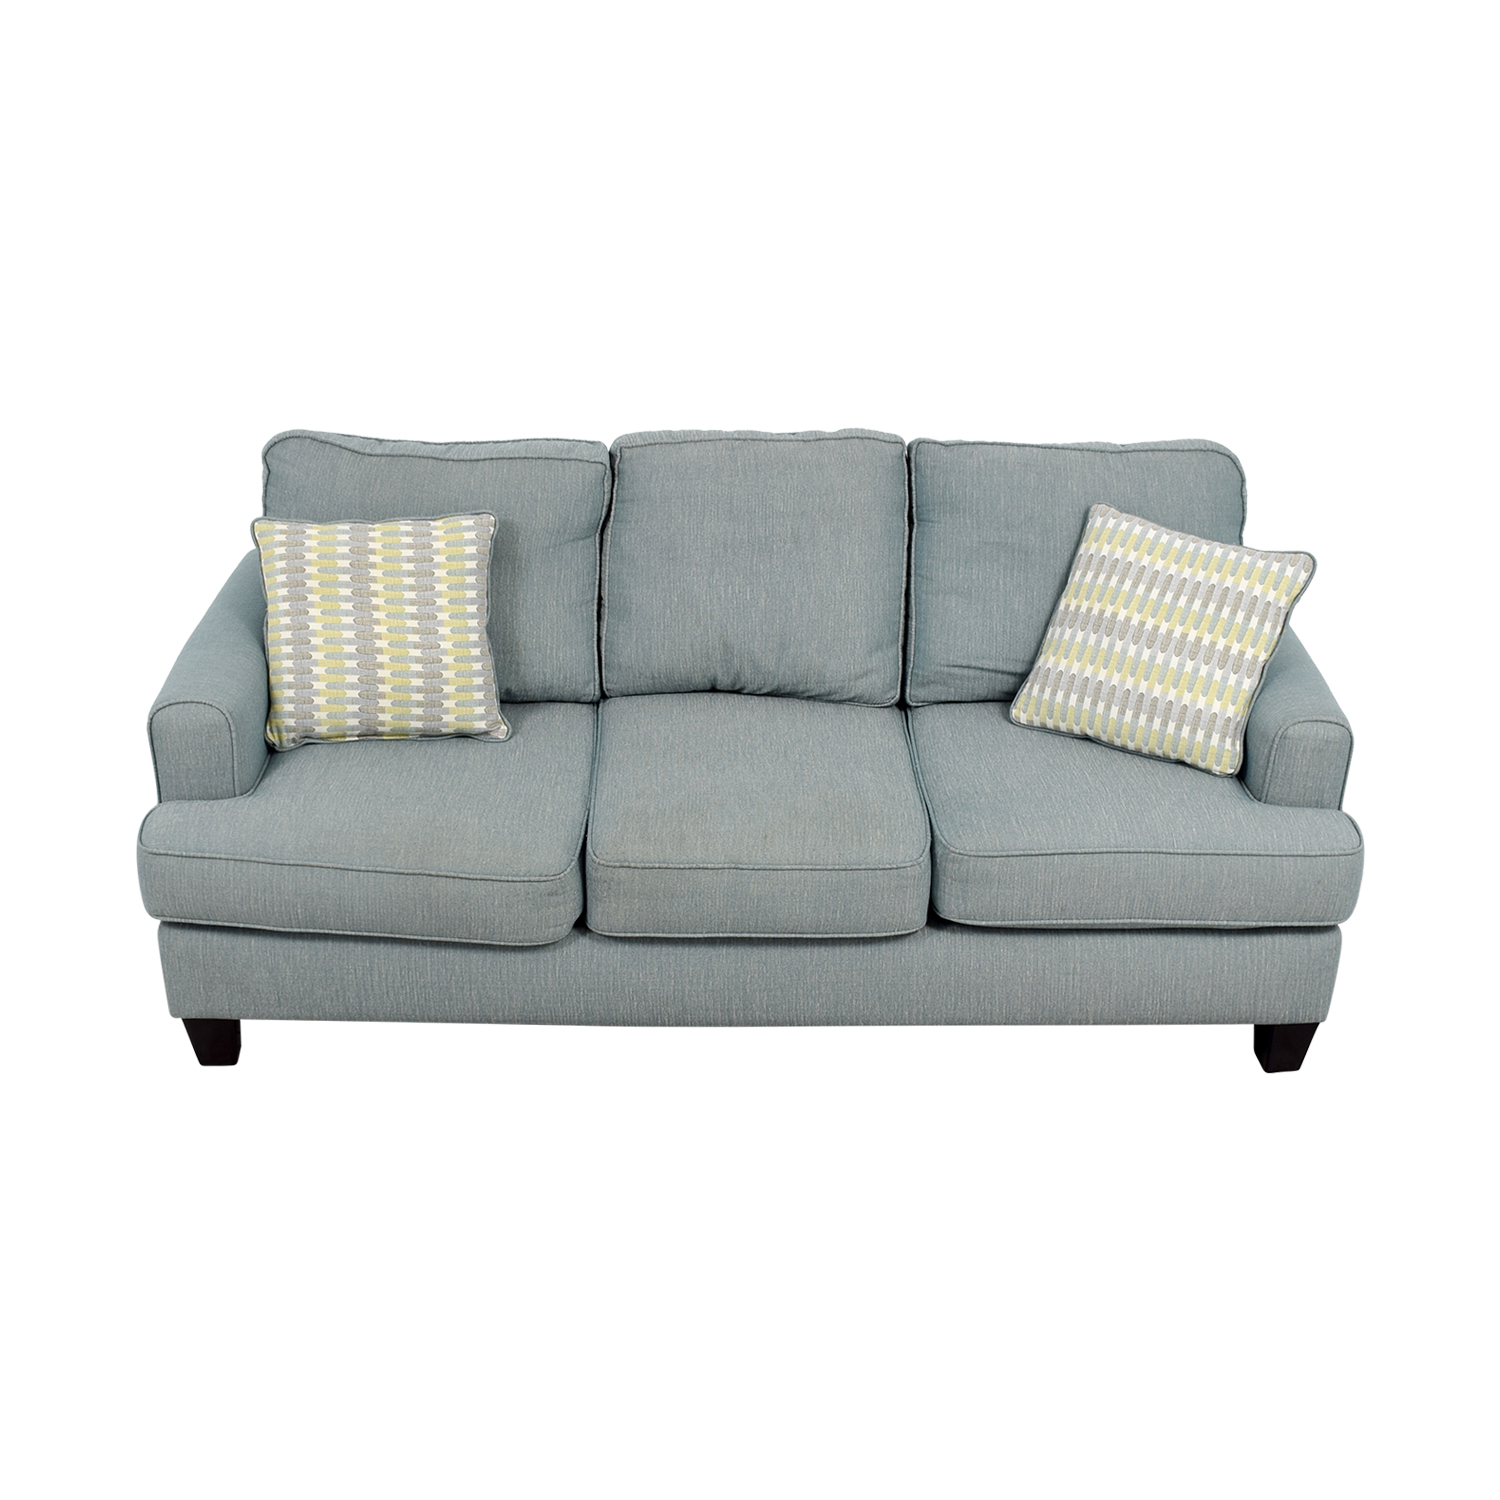 Raymour and Flanigan Raymour and Flanigan Willoughby Blue Three Seater Sofa blue